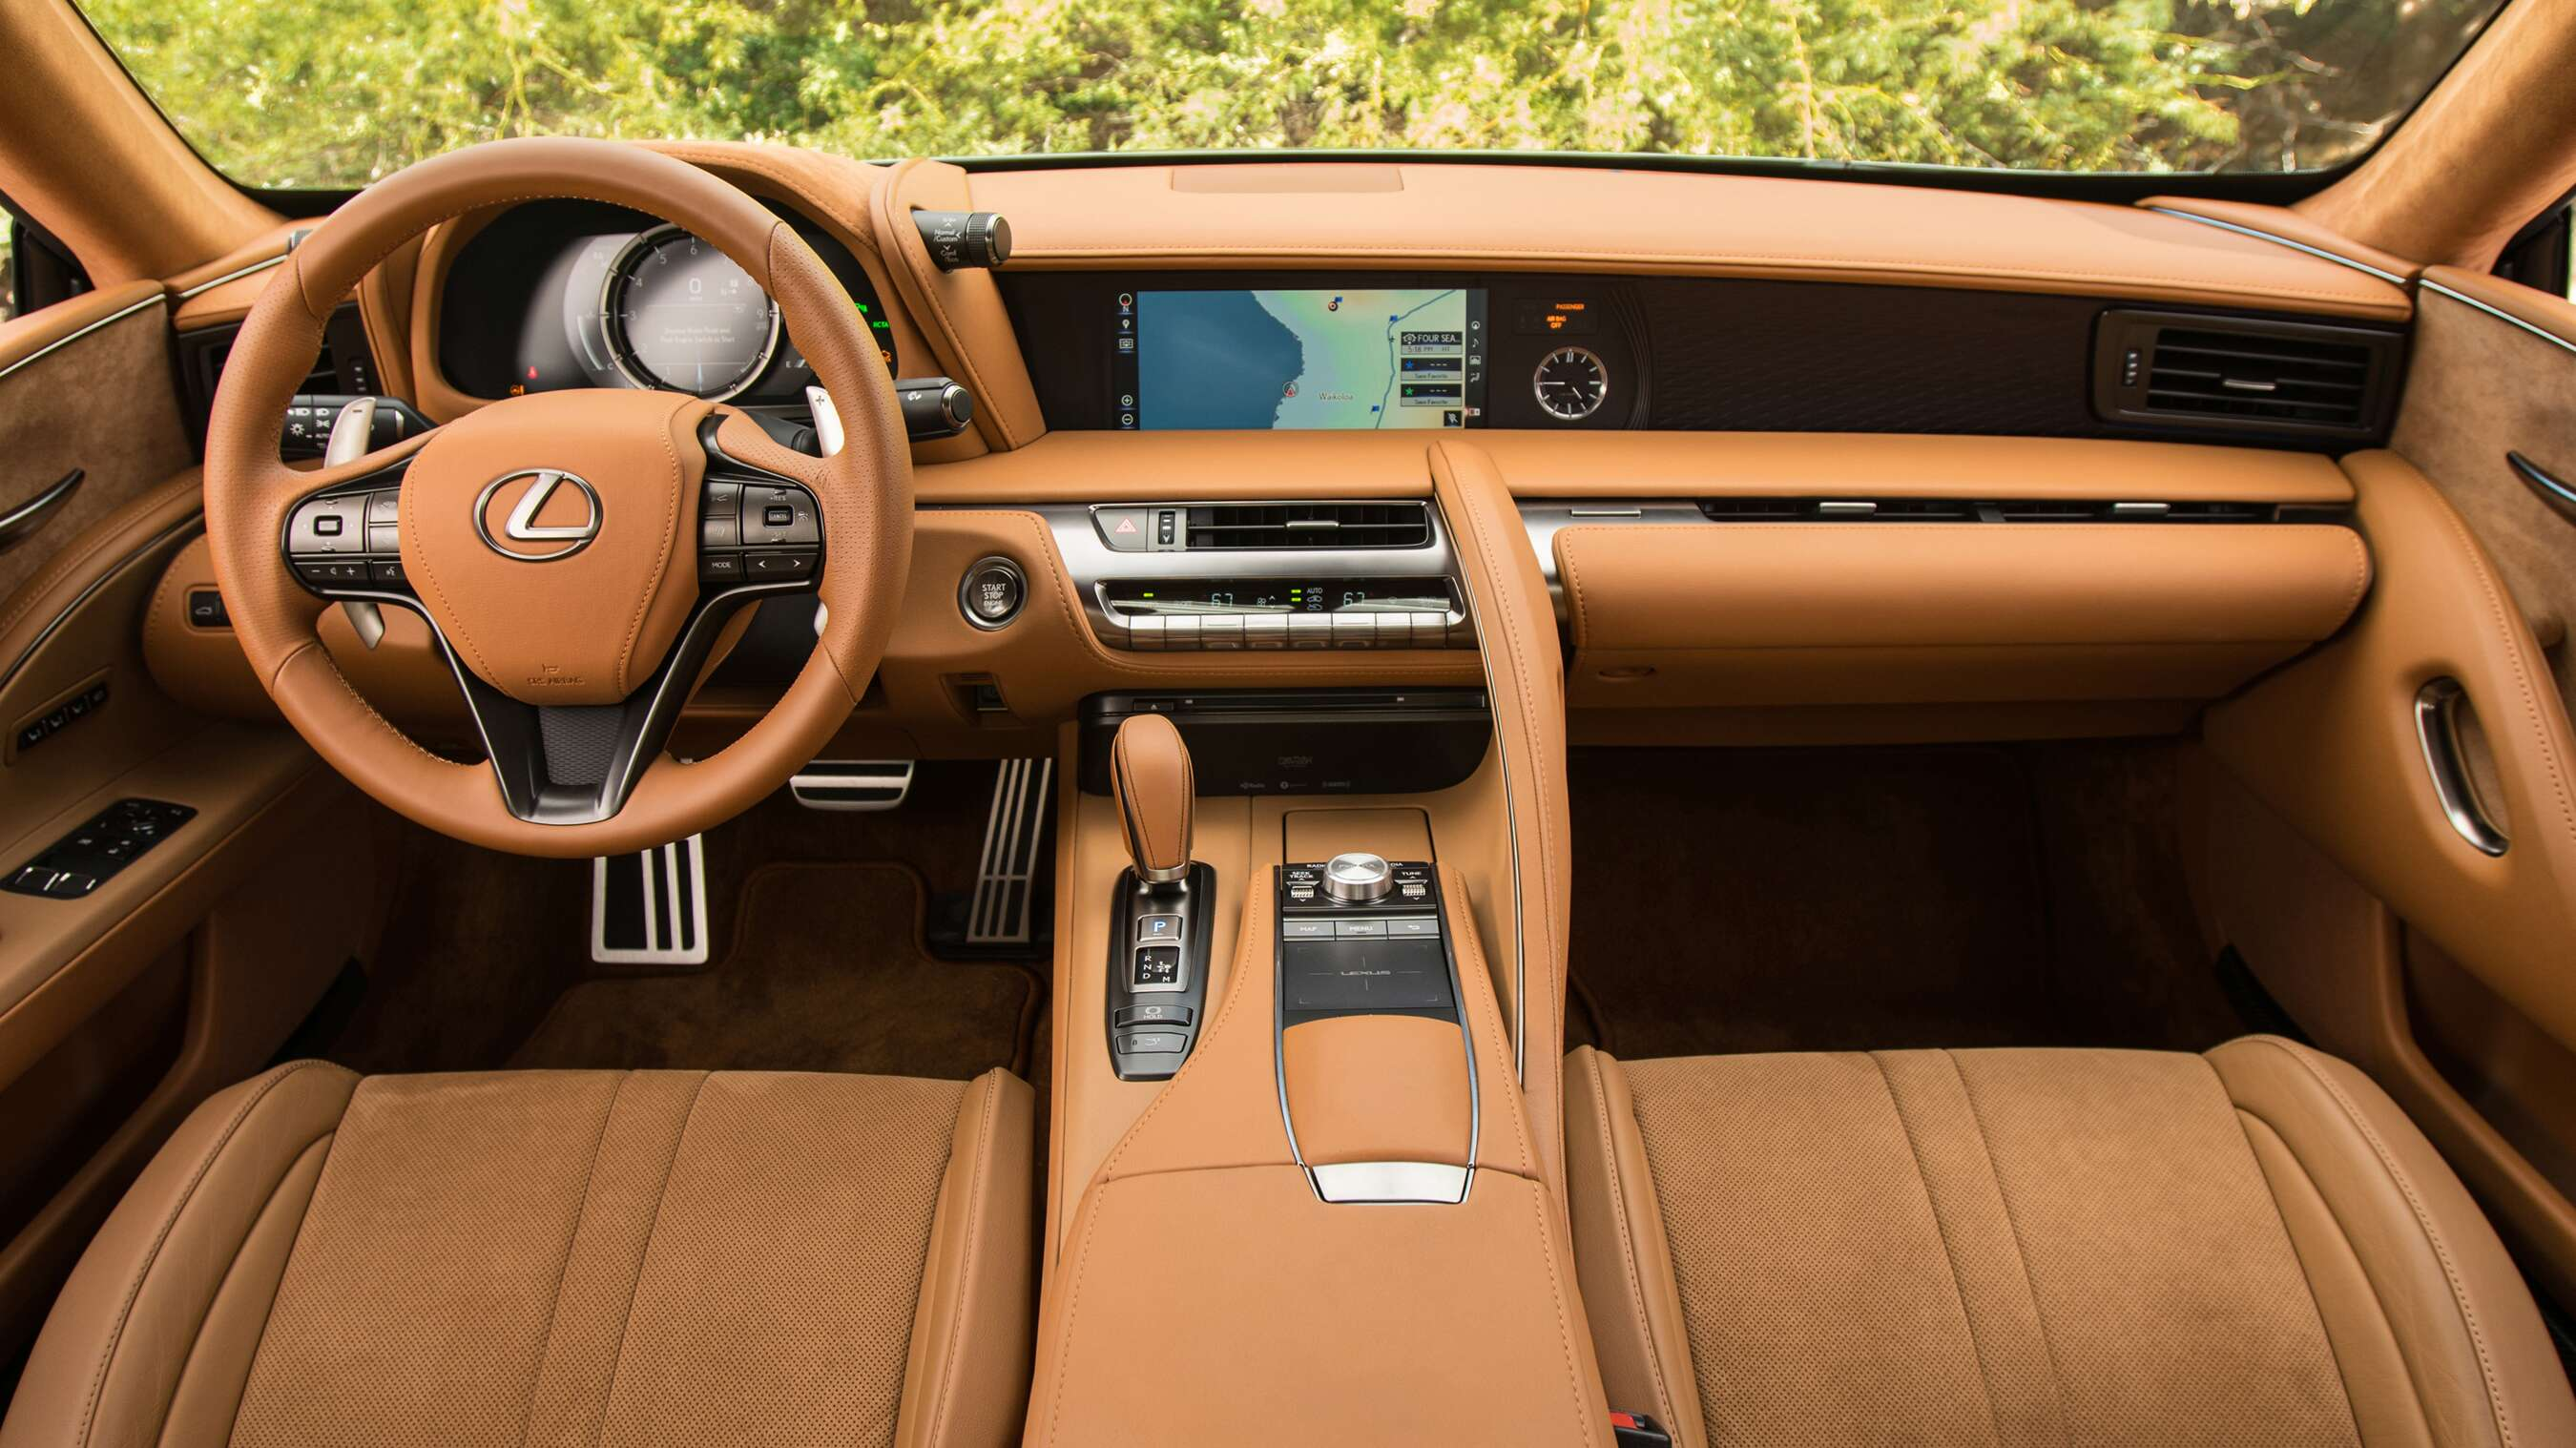 These Are The 10 Best New Car Interiors According To Wards The Drive